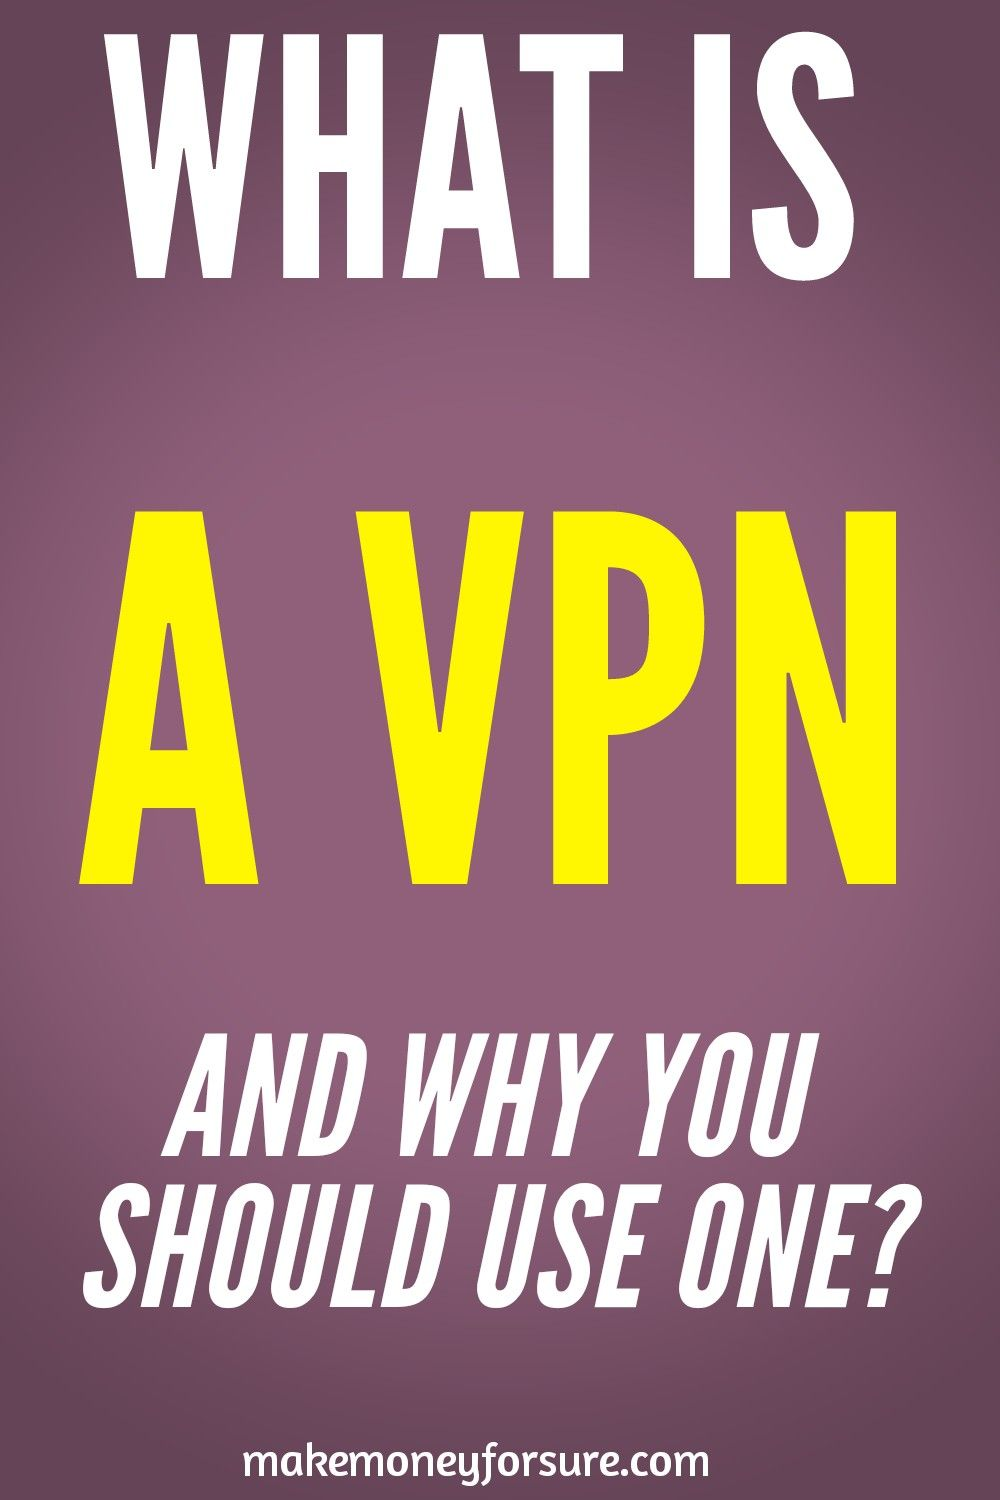 4e98fdf5046e1c5d99c4731e5c6bfc21 - Does A Vpn Really Protect You